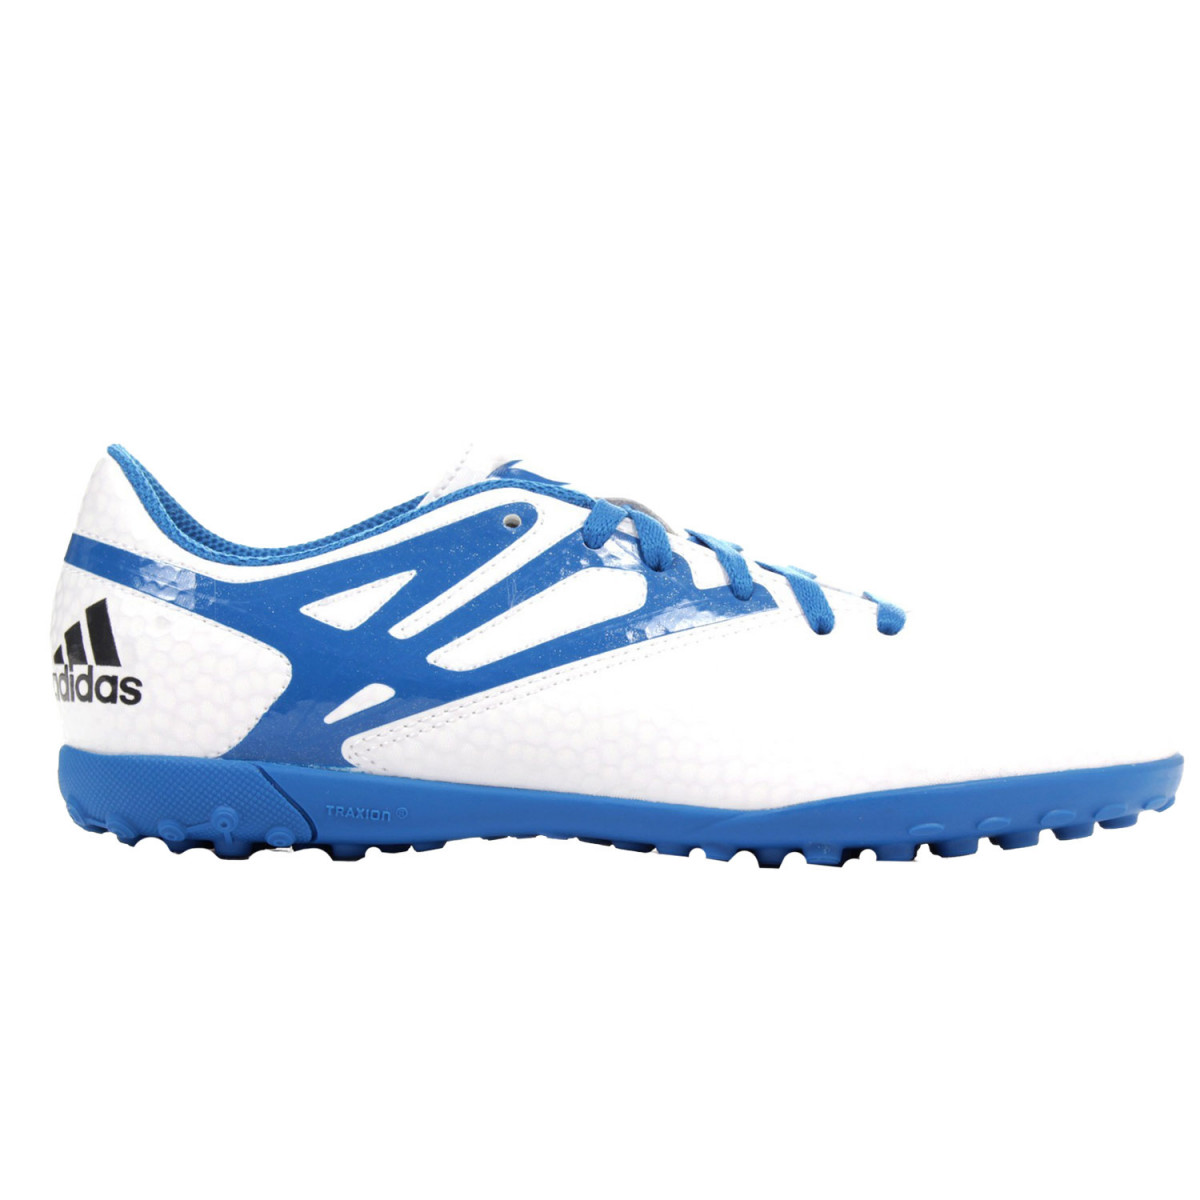 sports shoes a2a69 1f389 Botines Adidas Messi 15.4 Tf J